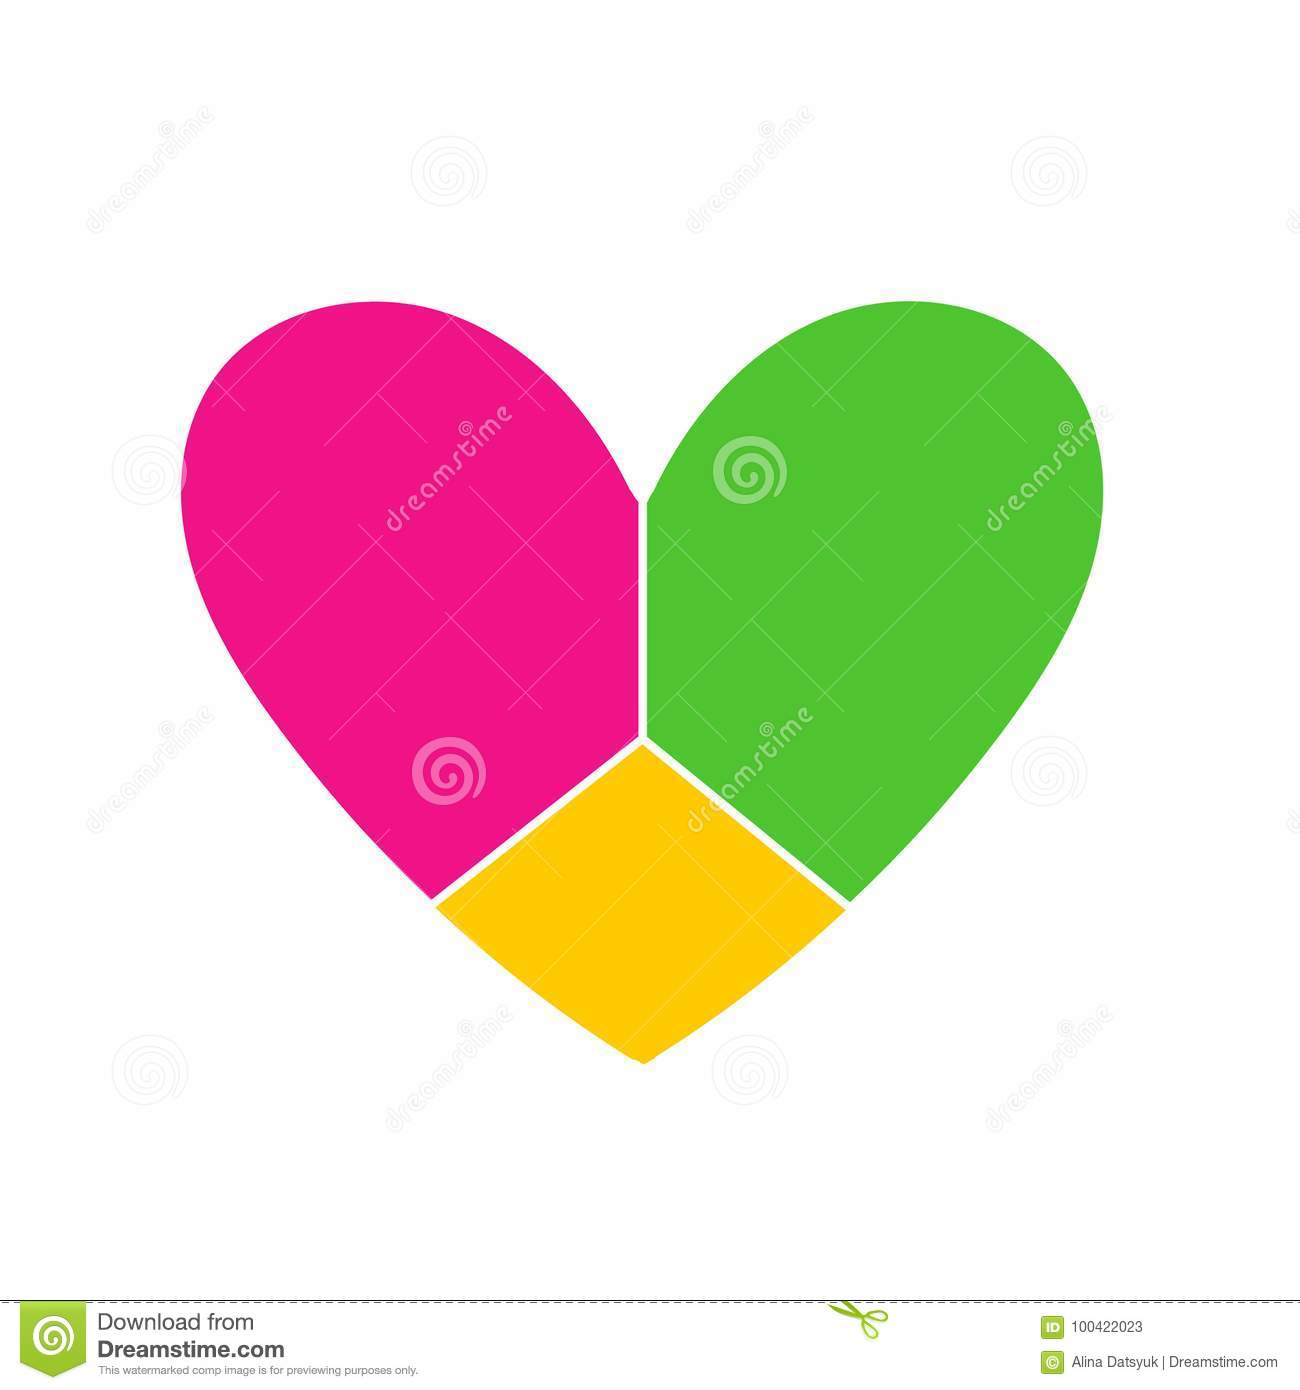 Vector Icon Heart. Image Of The Heart Is Divided Into Three ...